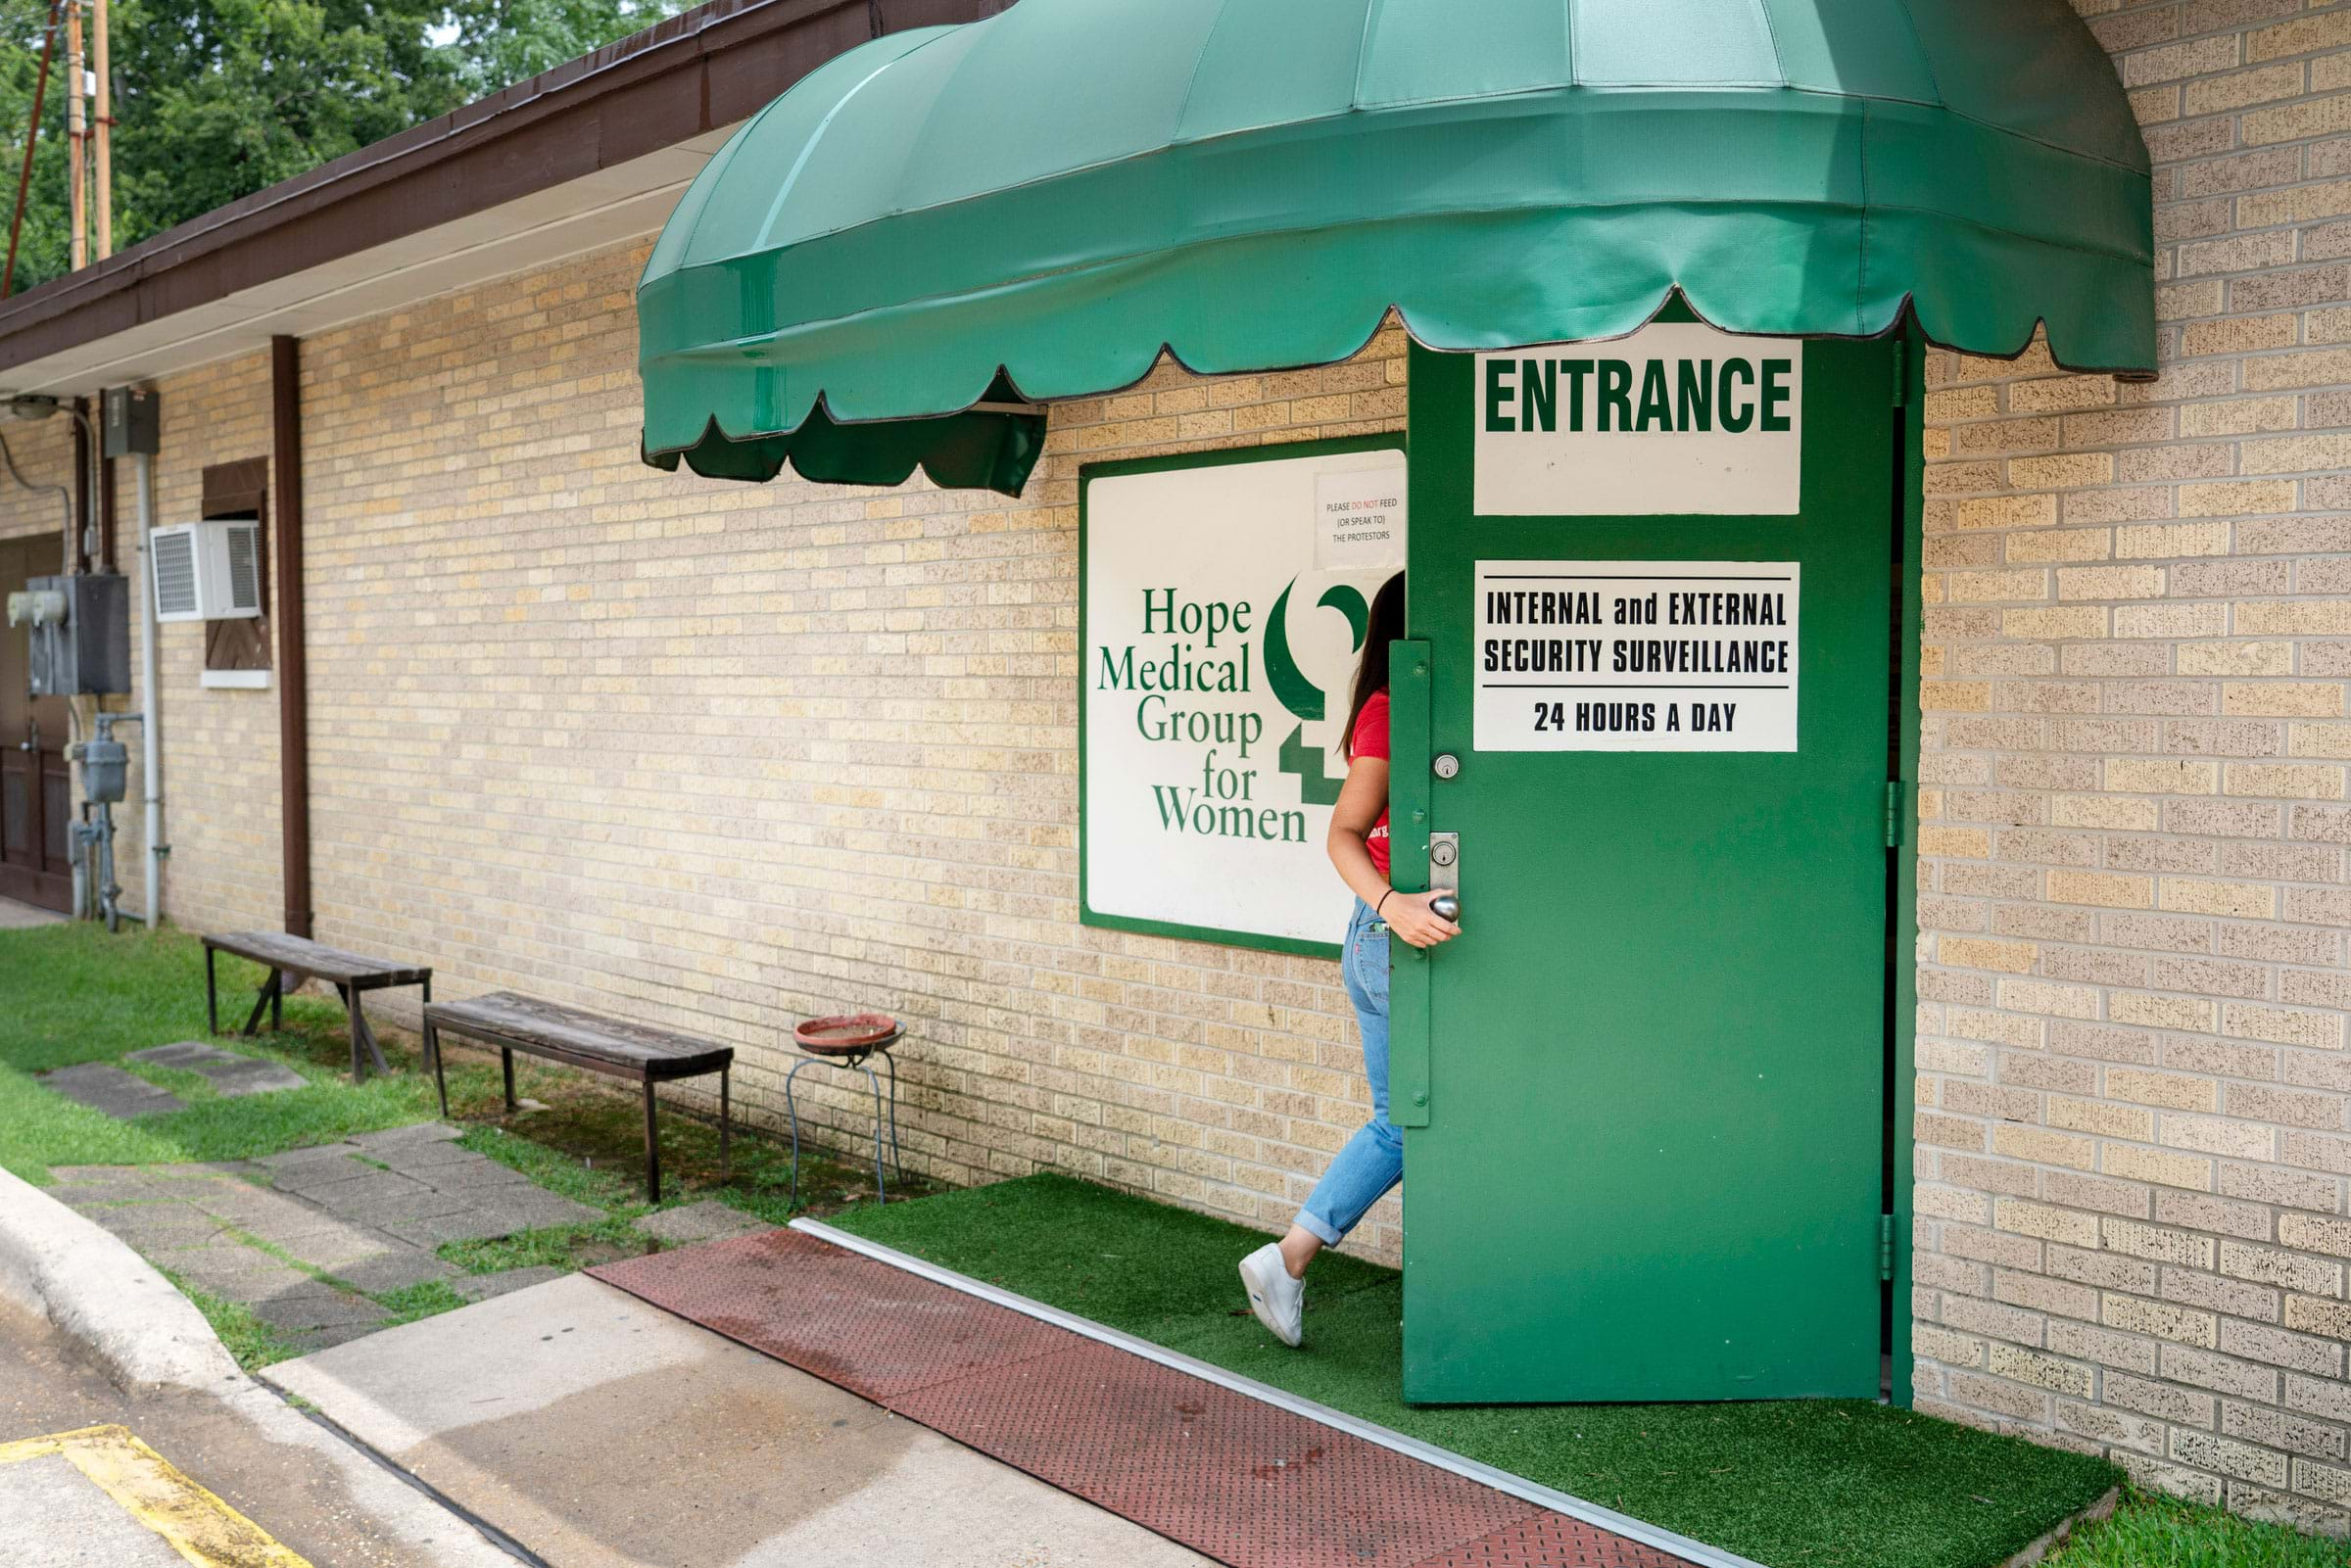 A woman entering the Hope Medical Group for Women under a green awning.